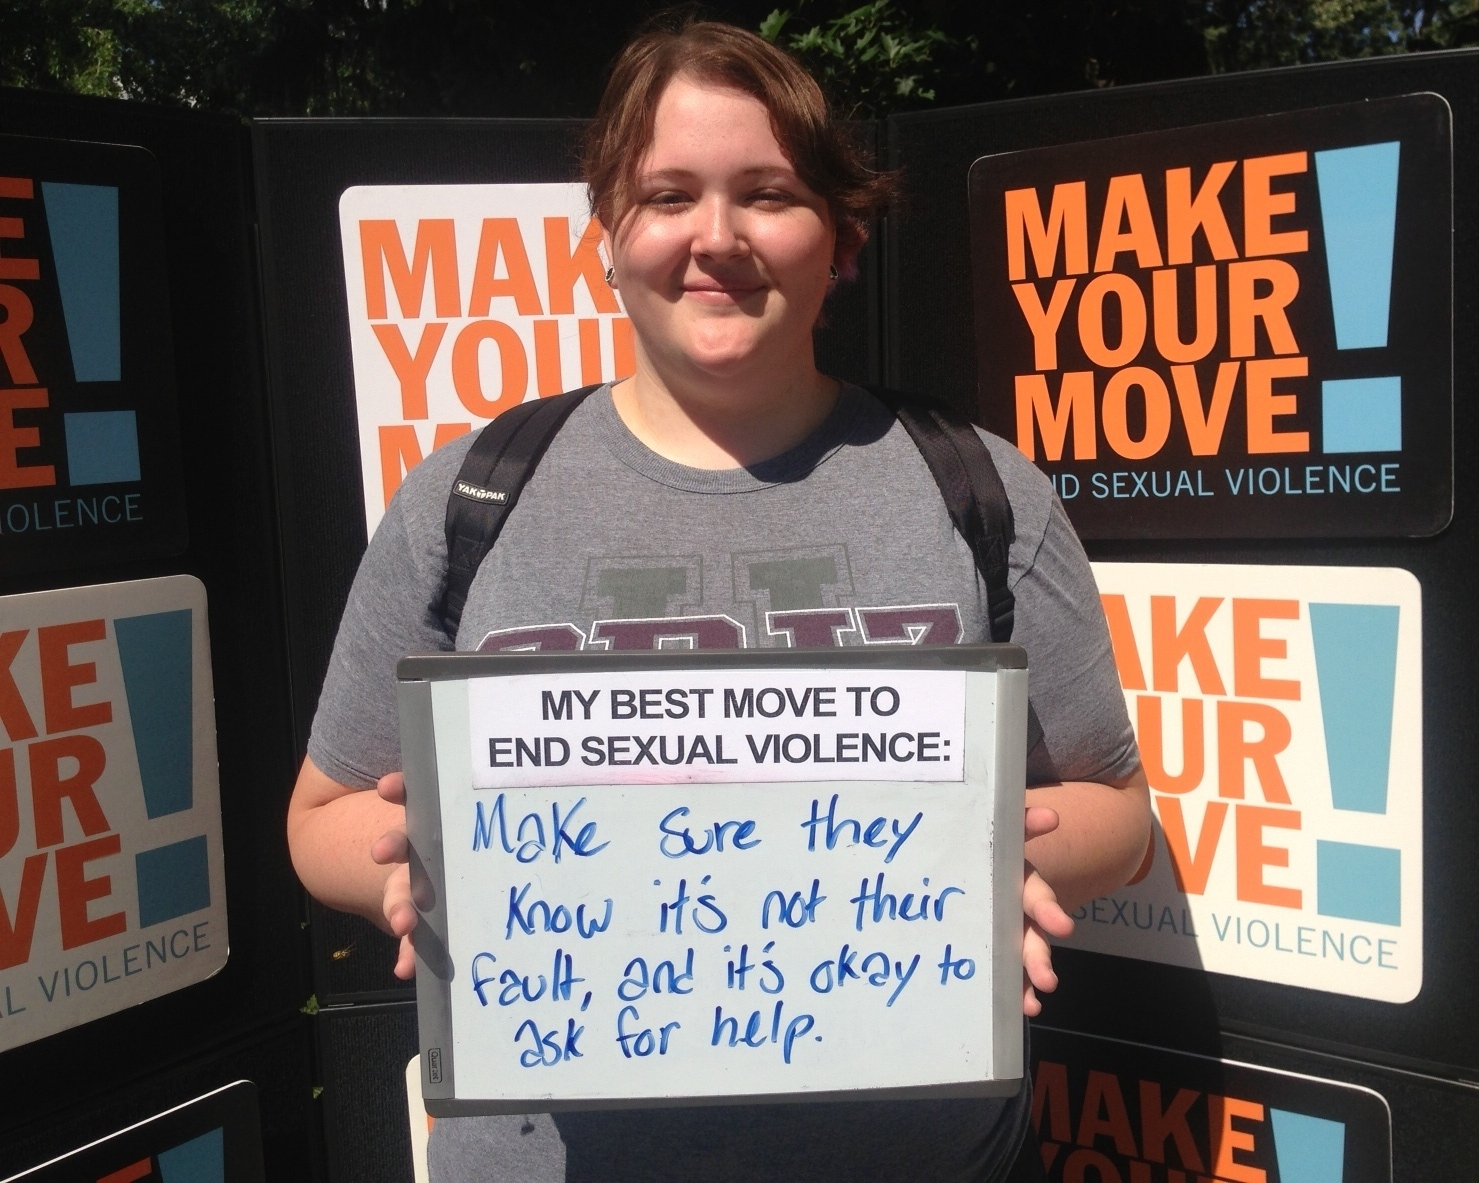 """A person with brown hair holds a whiteboard. The sign says: """"My best move to end sexual violence: Make sure they know it's not their fault, and it's okay to ask for help."""""""